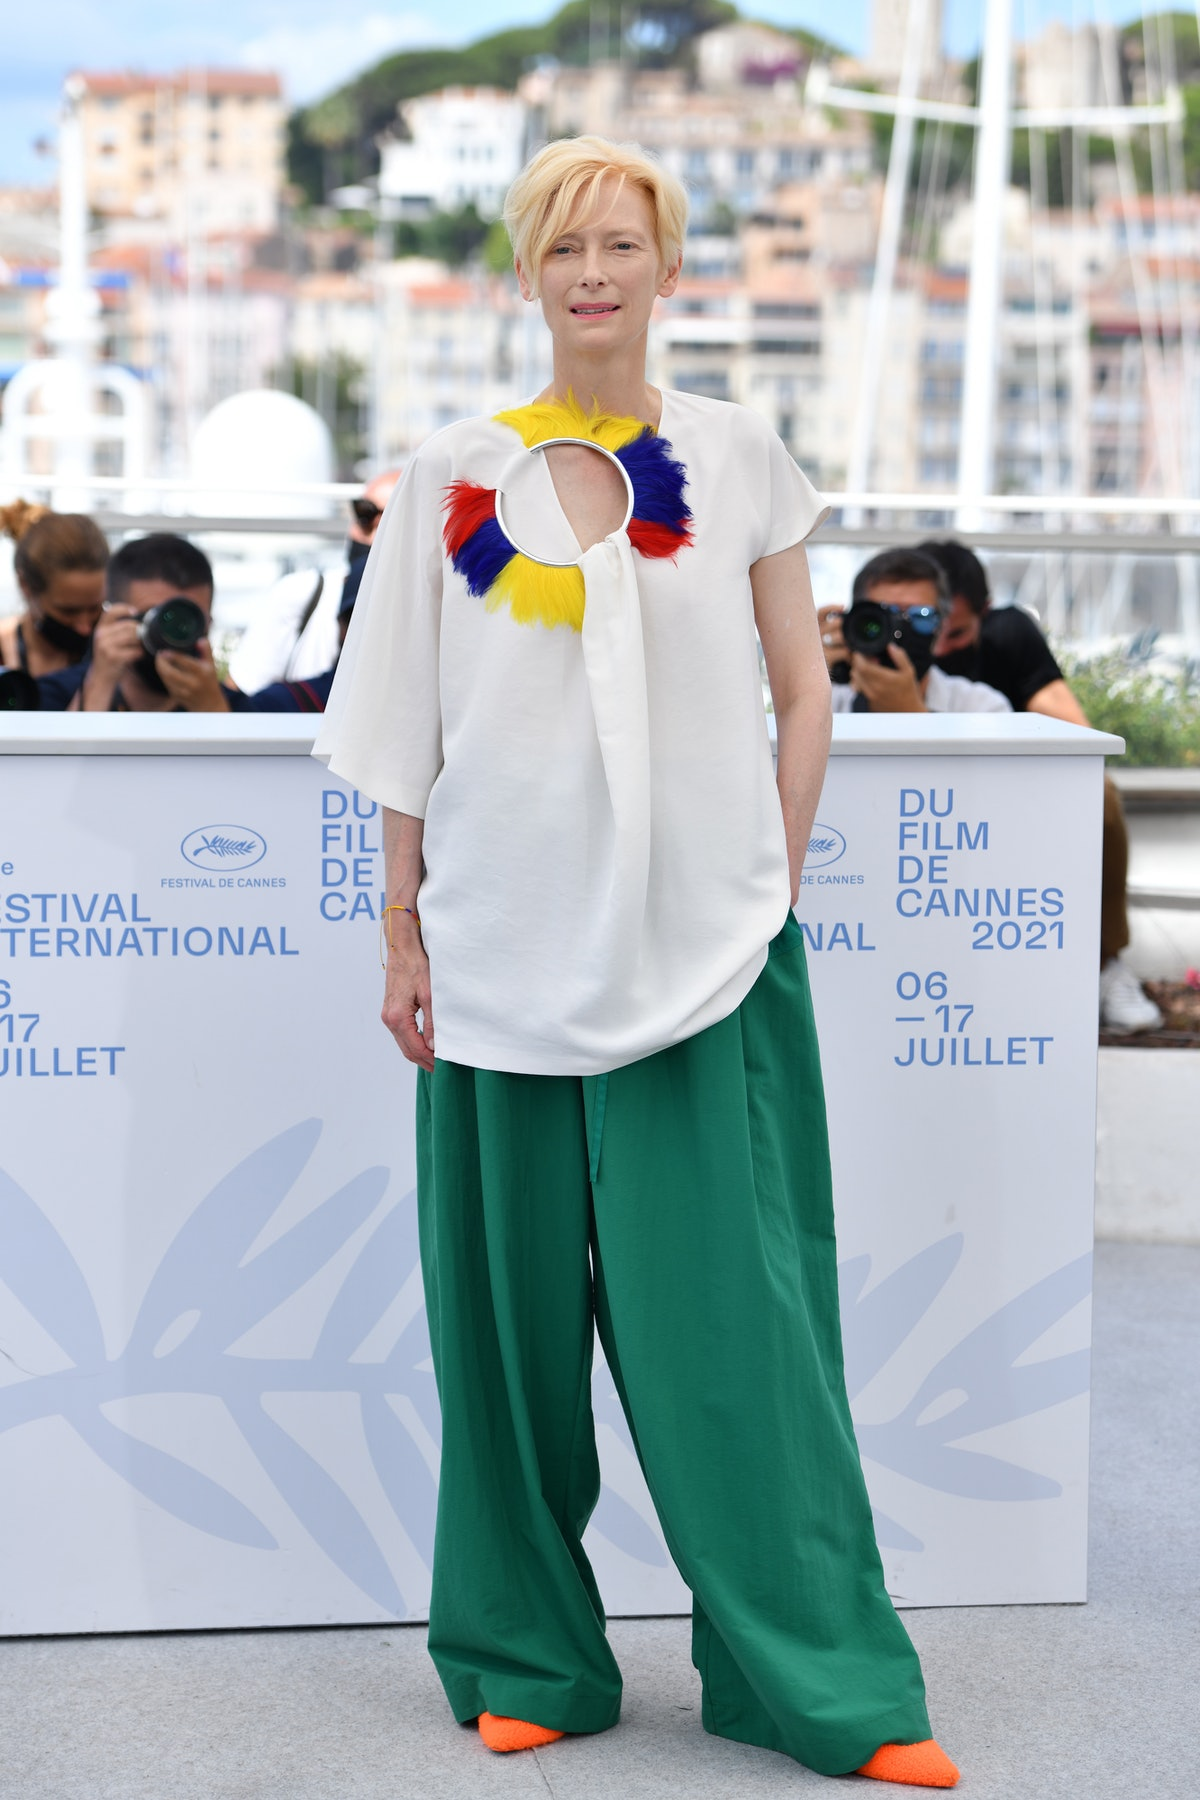 """CANNES, FRANCE - JULY 16: Tilda Swinton attends the """"Memoria"""" photocall during the 74th annual Cannes Film Festival on July 16, 2021 in Cannes, France. (Photo by Lionel Hahn/Getty Images)"""